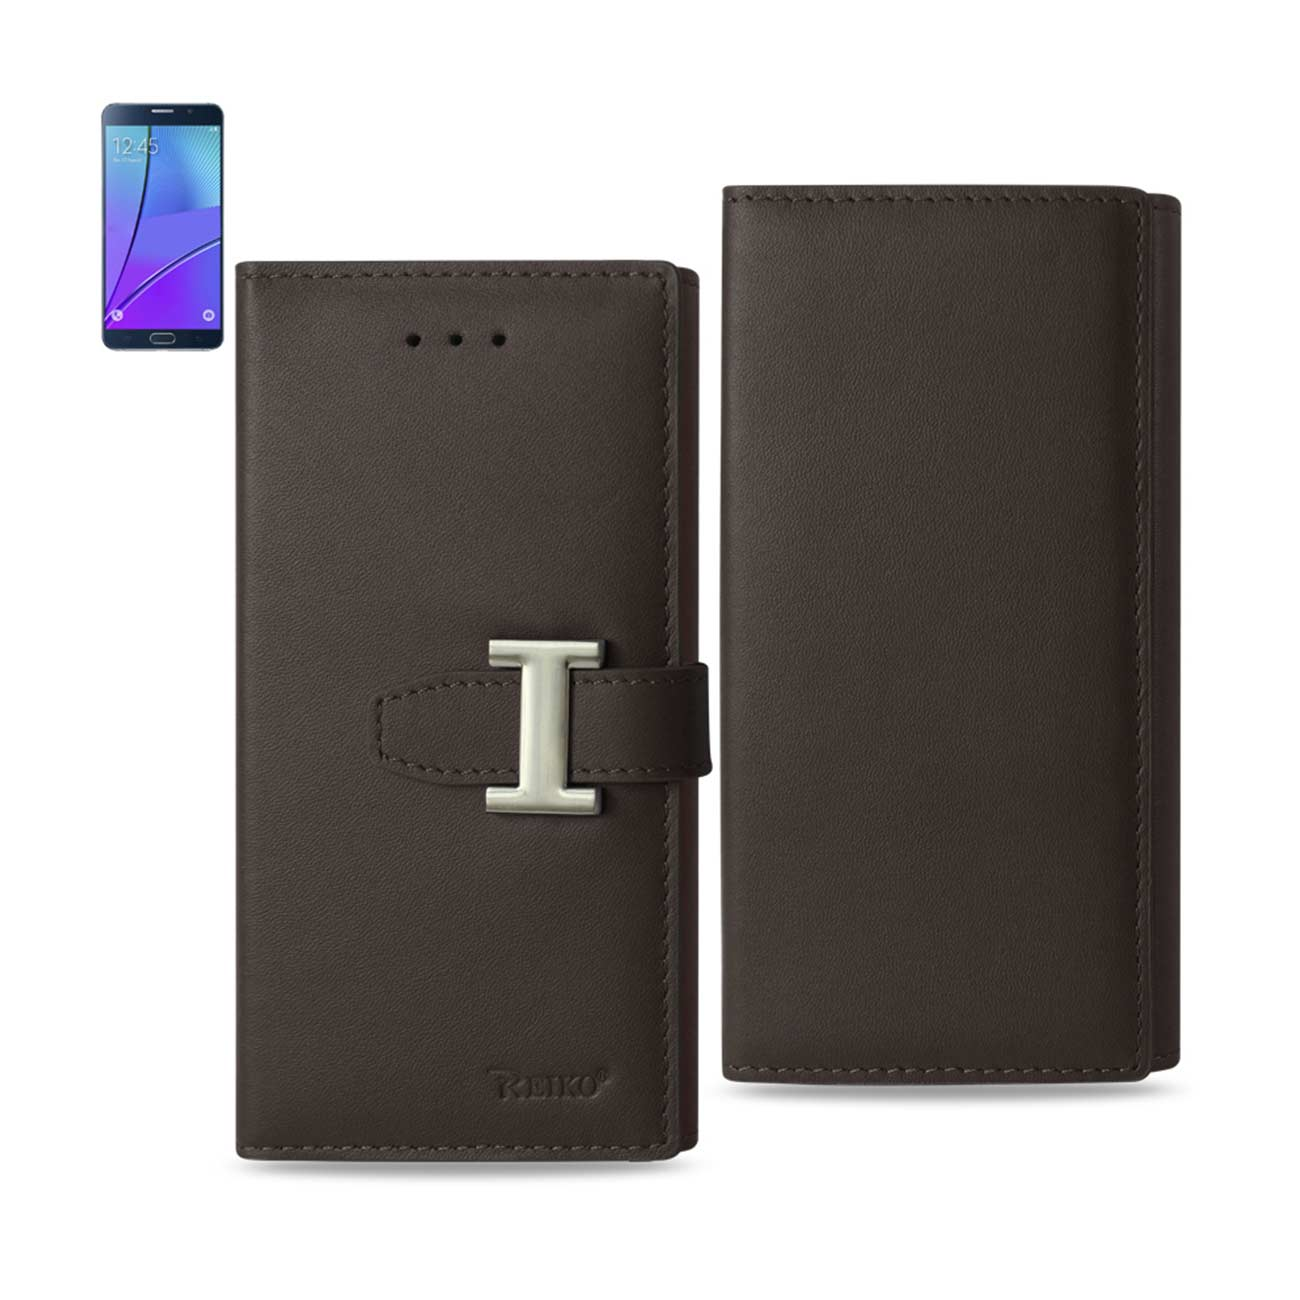 SAMSUNG GALAXY NOTE 5 PLUS GENUINE LEATHER RFID WALLET CASE IN UMBER